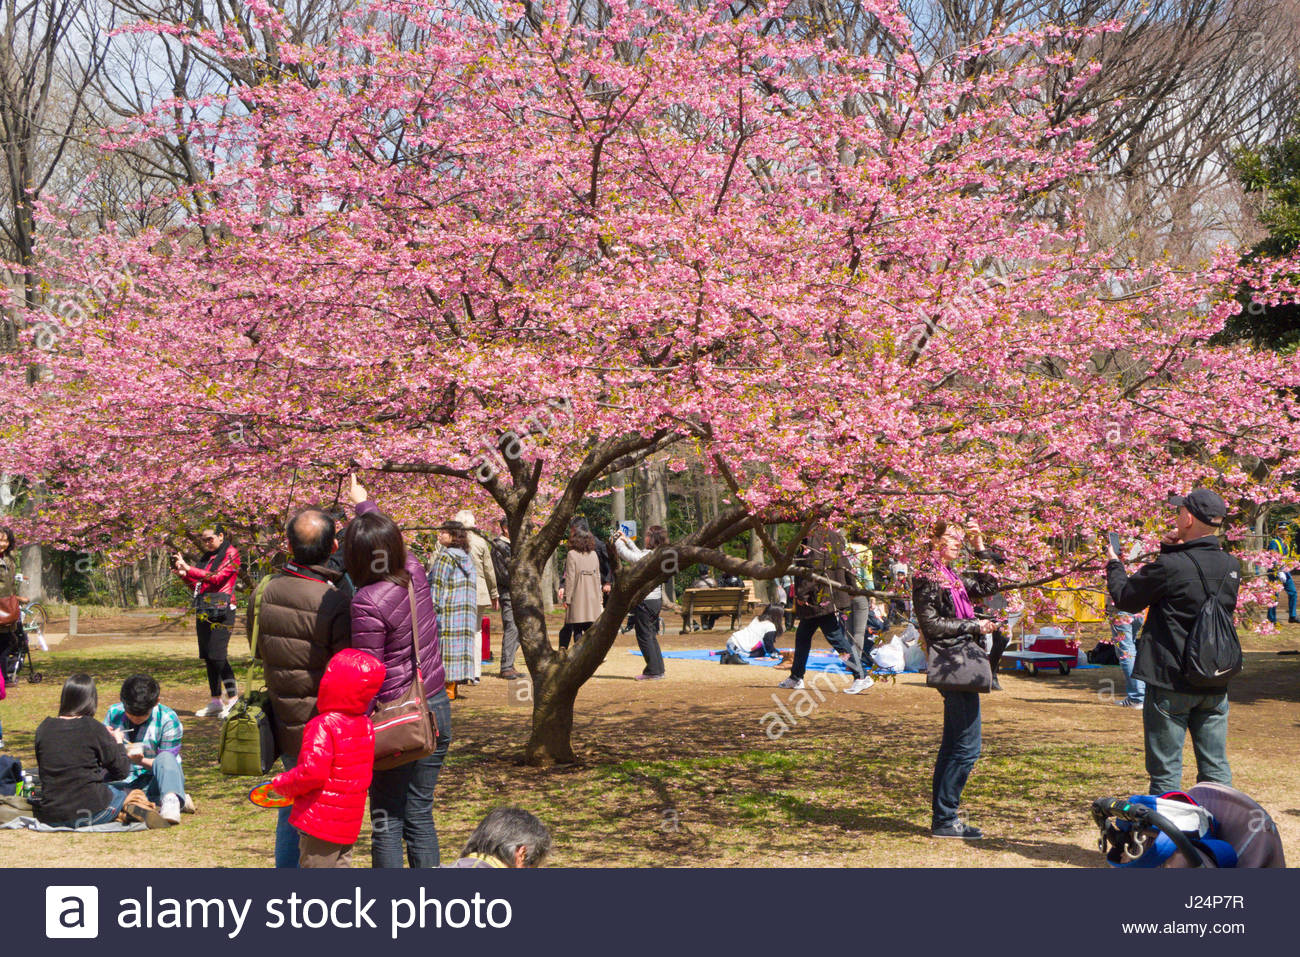 Japanese People Sitting Under Cherry Trees With Pink Blossoms On A